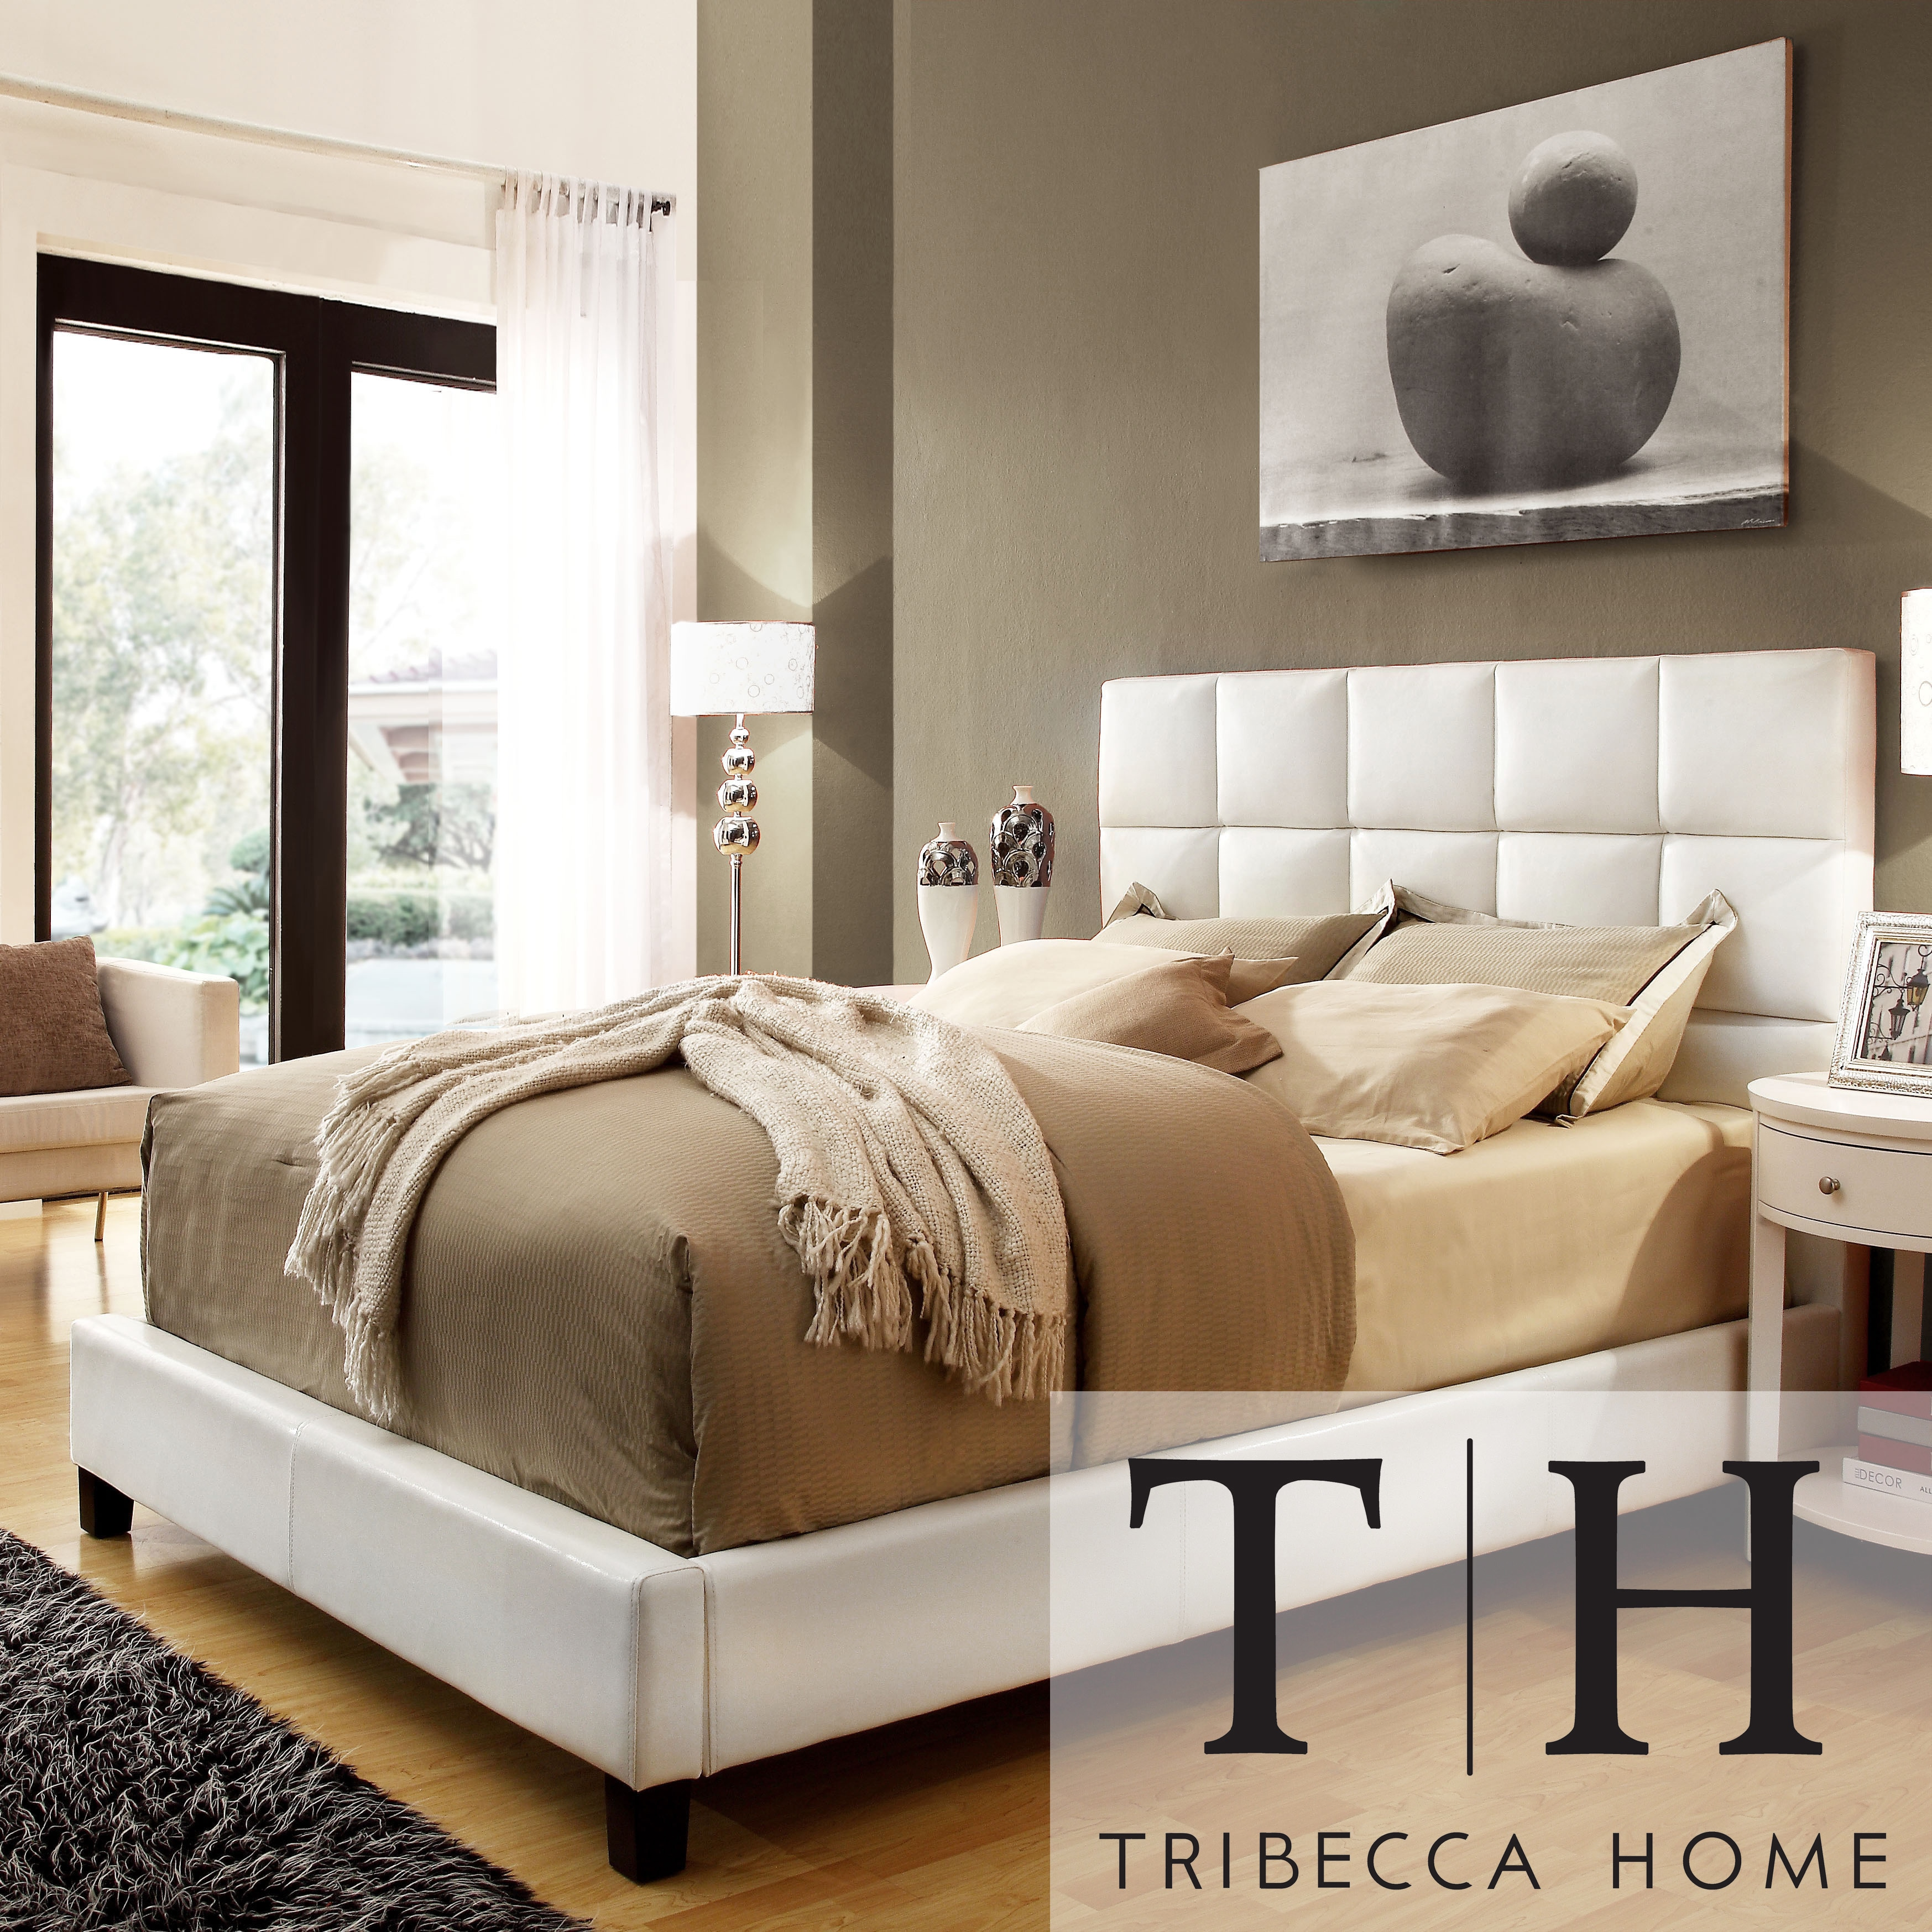 NEW! Sarajevo Queen-Sized White Faux Leather Bed Bedroom